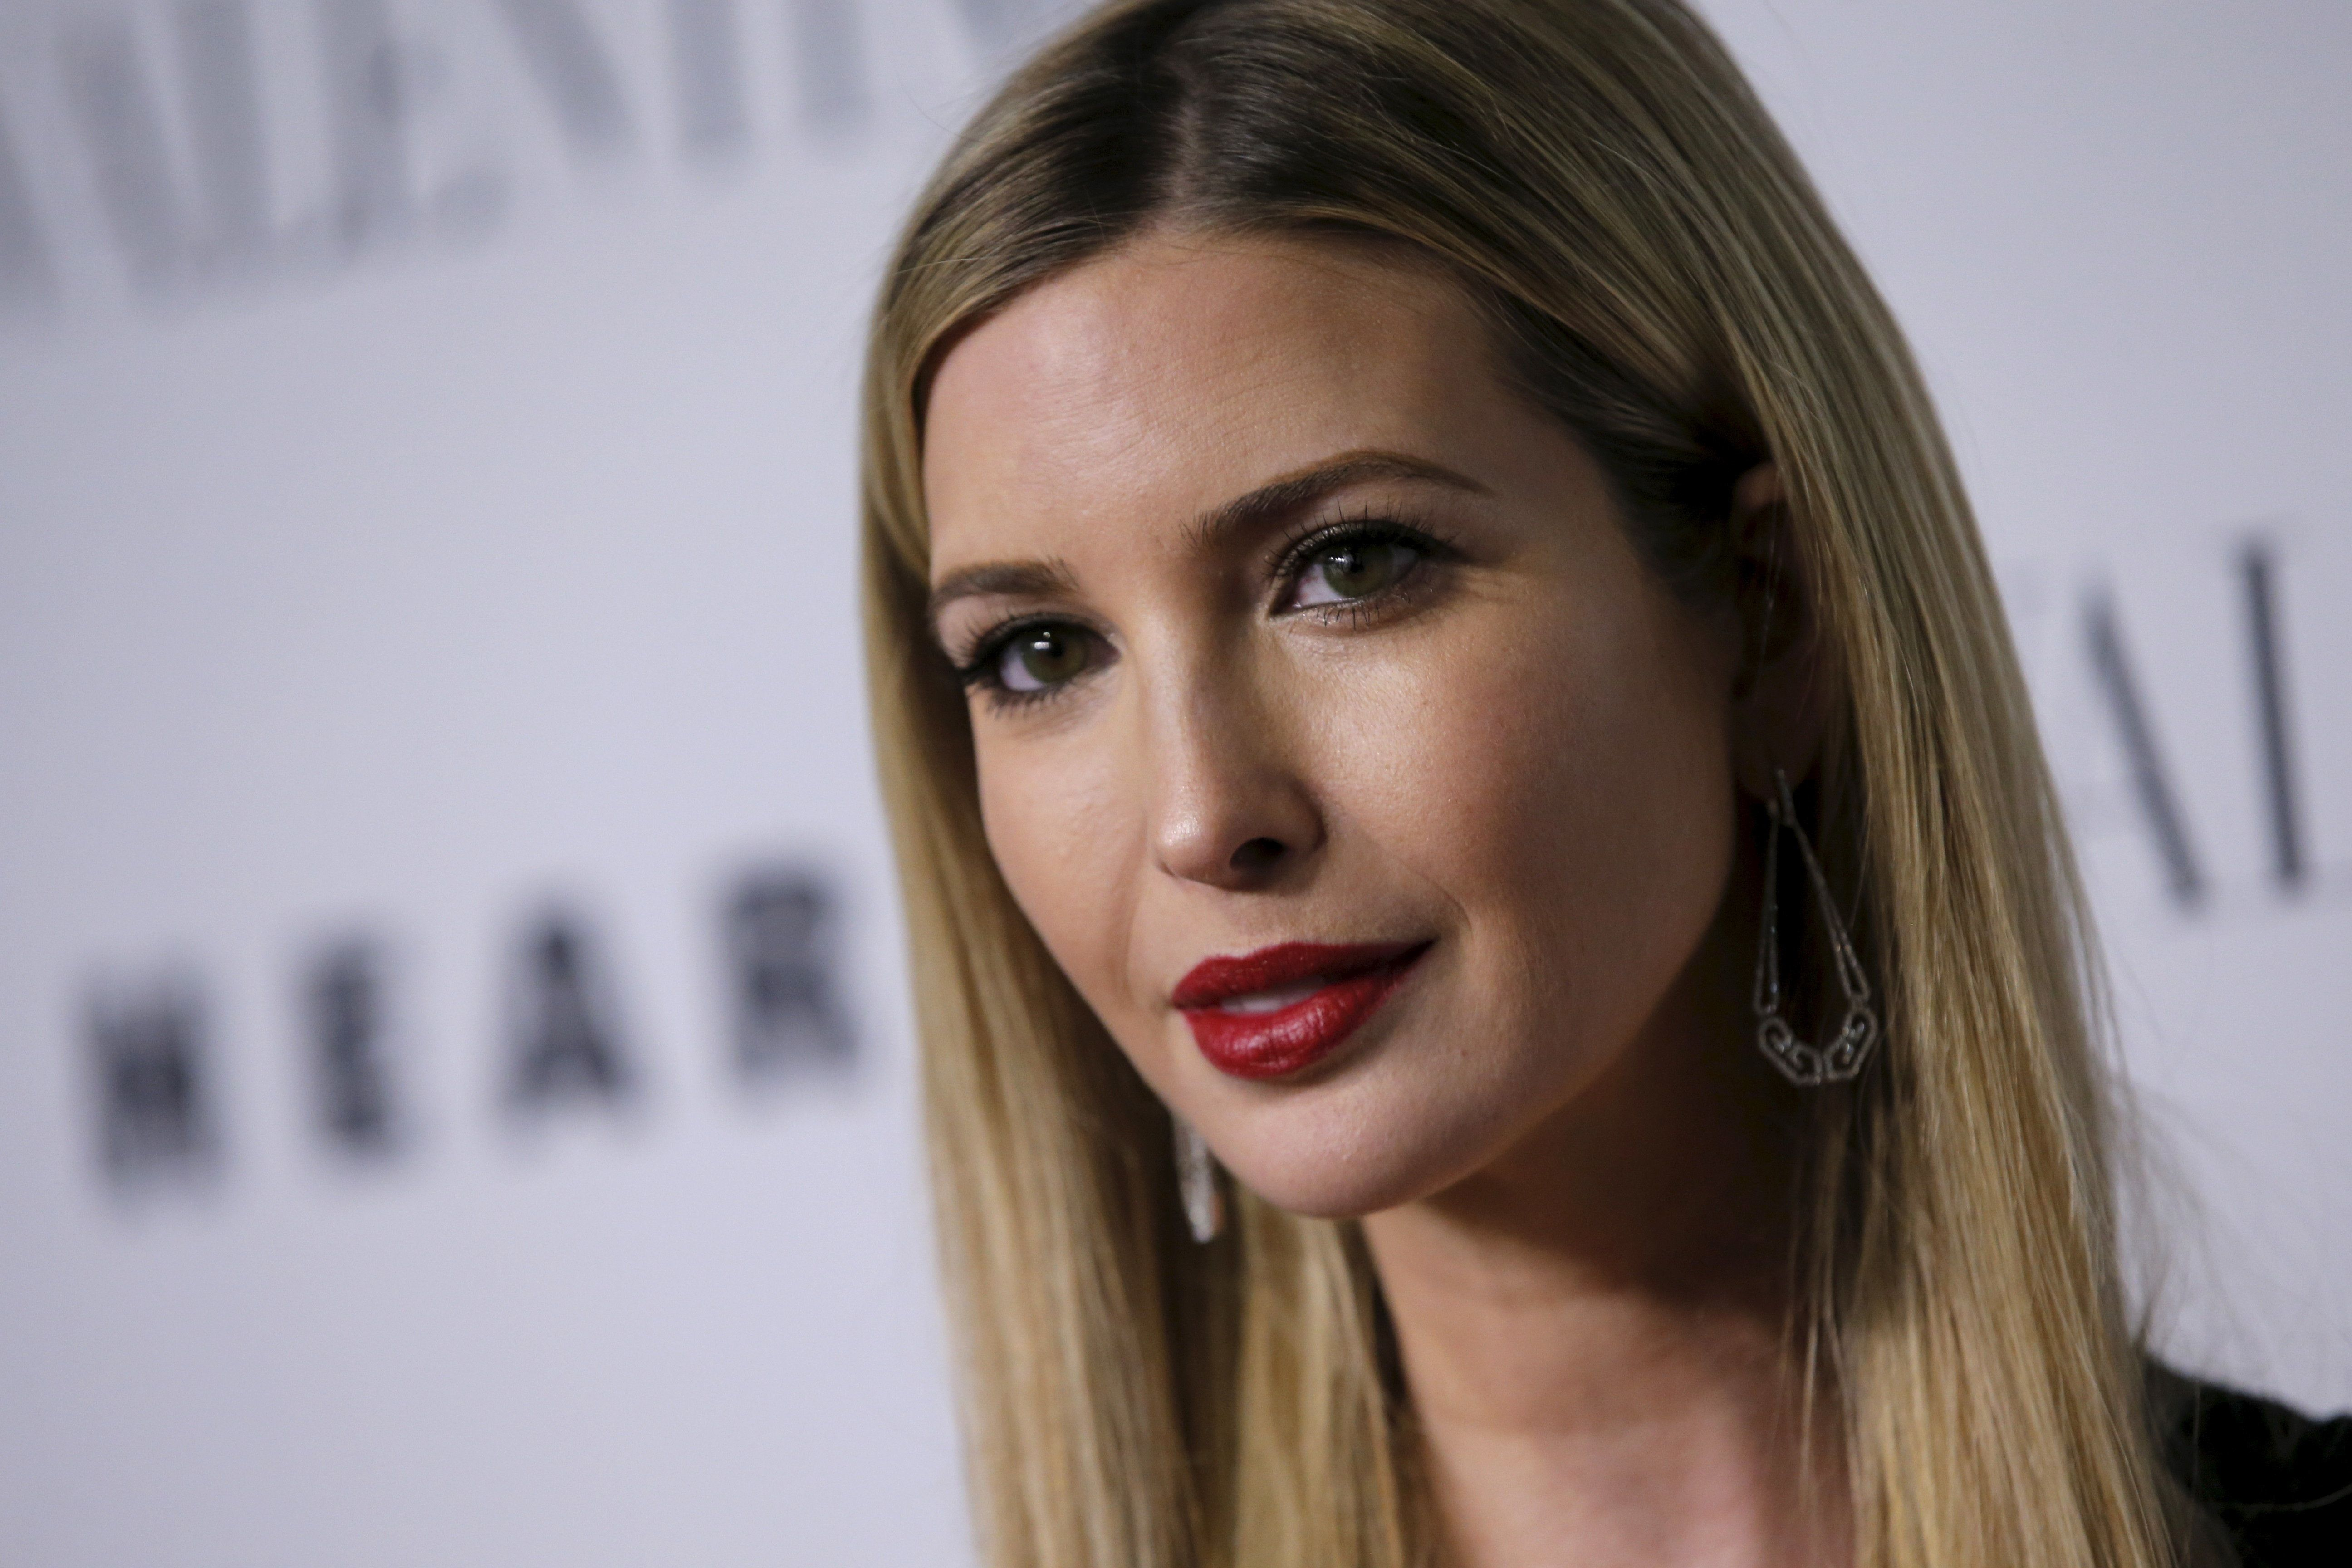 """Ivanka Trump poses as she arrives for the """"An Evening Honoring Valentino"""" gala benefiting the Lincoln Center Corporate Fund at Alice Tully Hall at Lincoln Center in the Manhattan borough of New York City, December 7, 2015. The event honored Valentino creative directors Maria Grazia Chiuri and Pierpaolo Piccioli.  REUTERS/Mike Segar"""